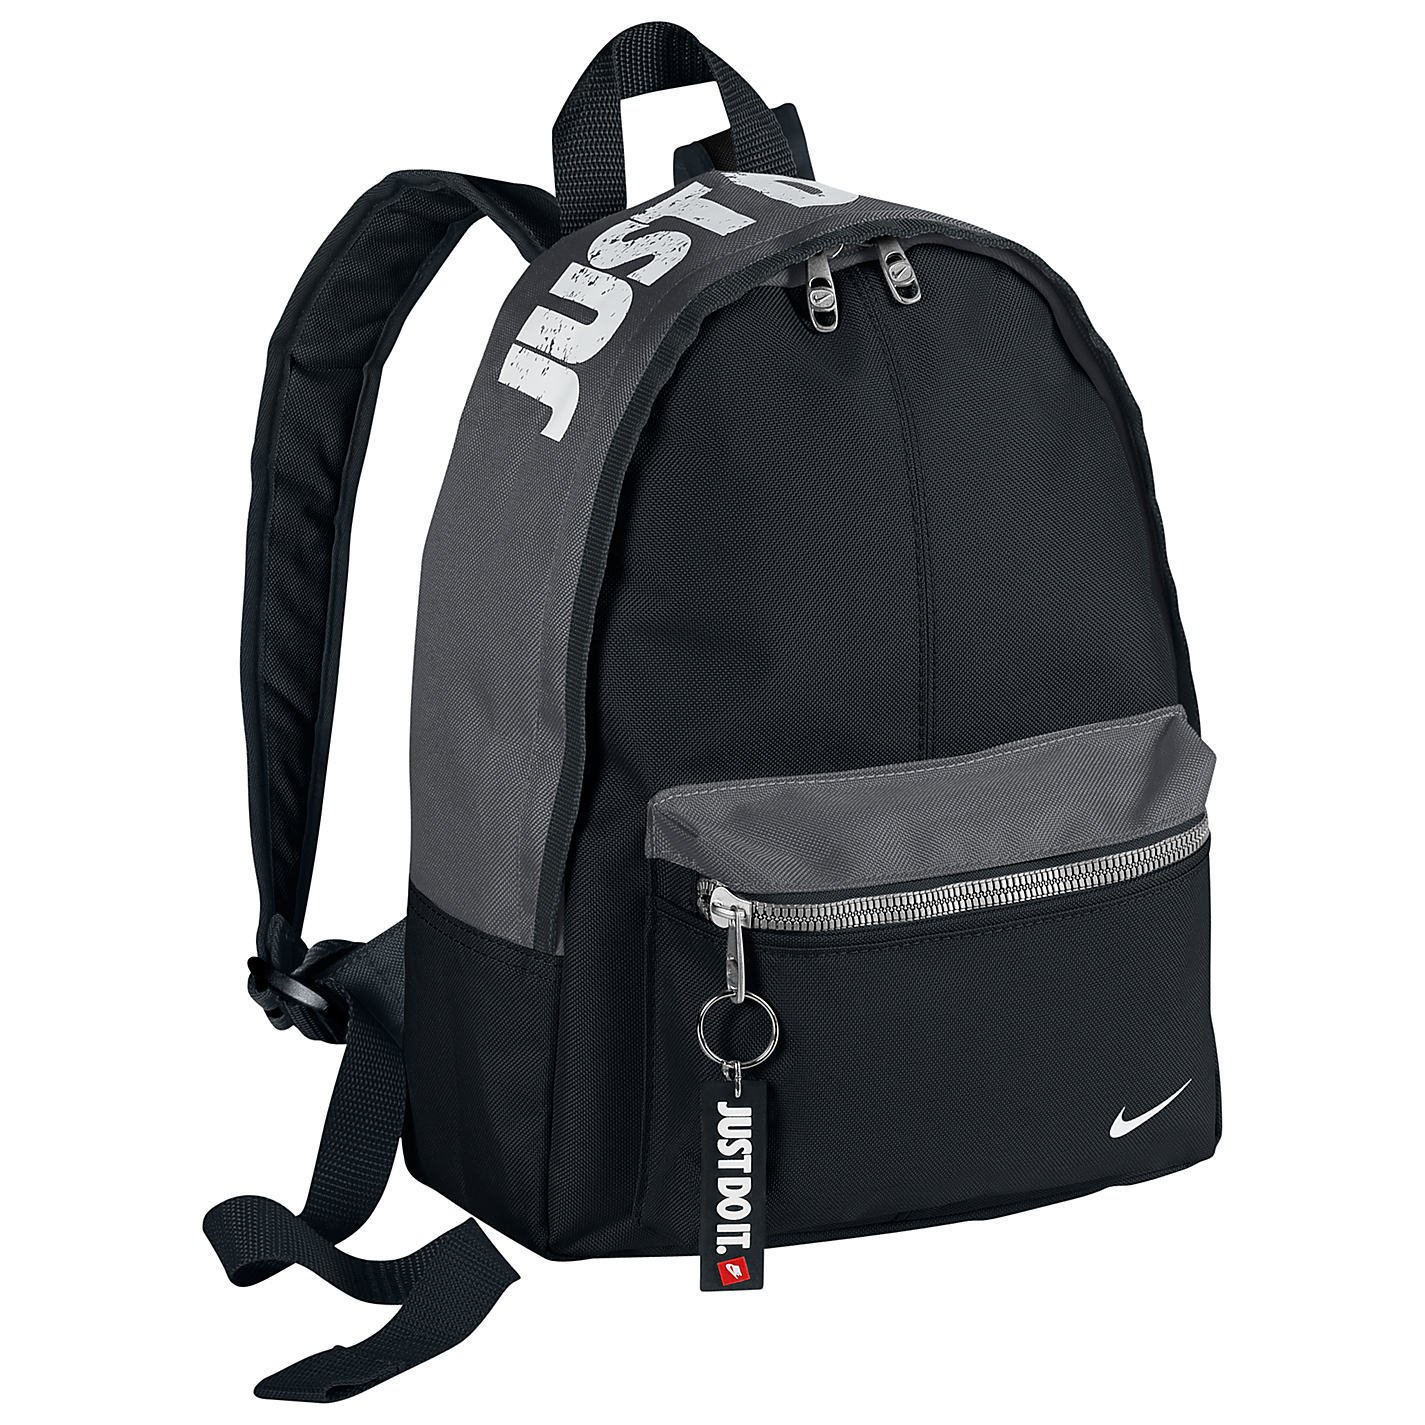 Nike Mini Backpack Black and Grey, Ideal for when you're